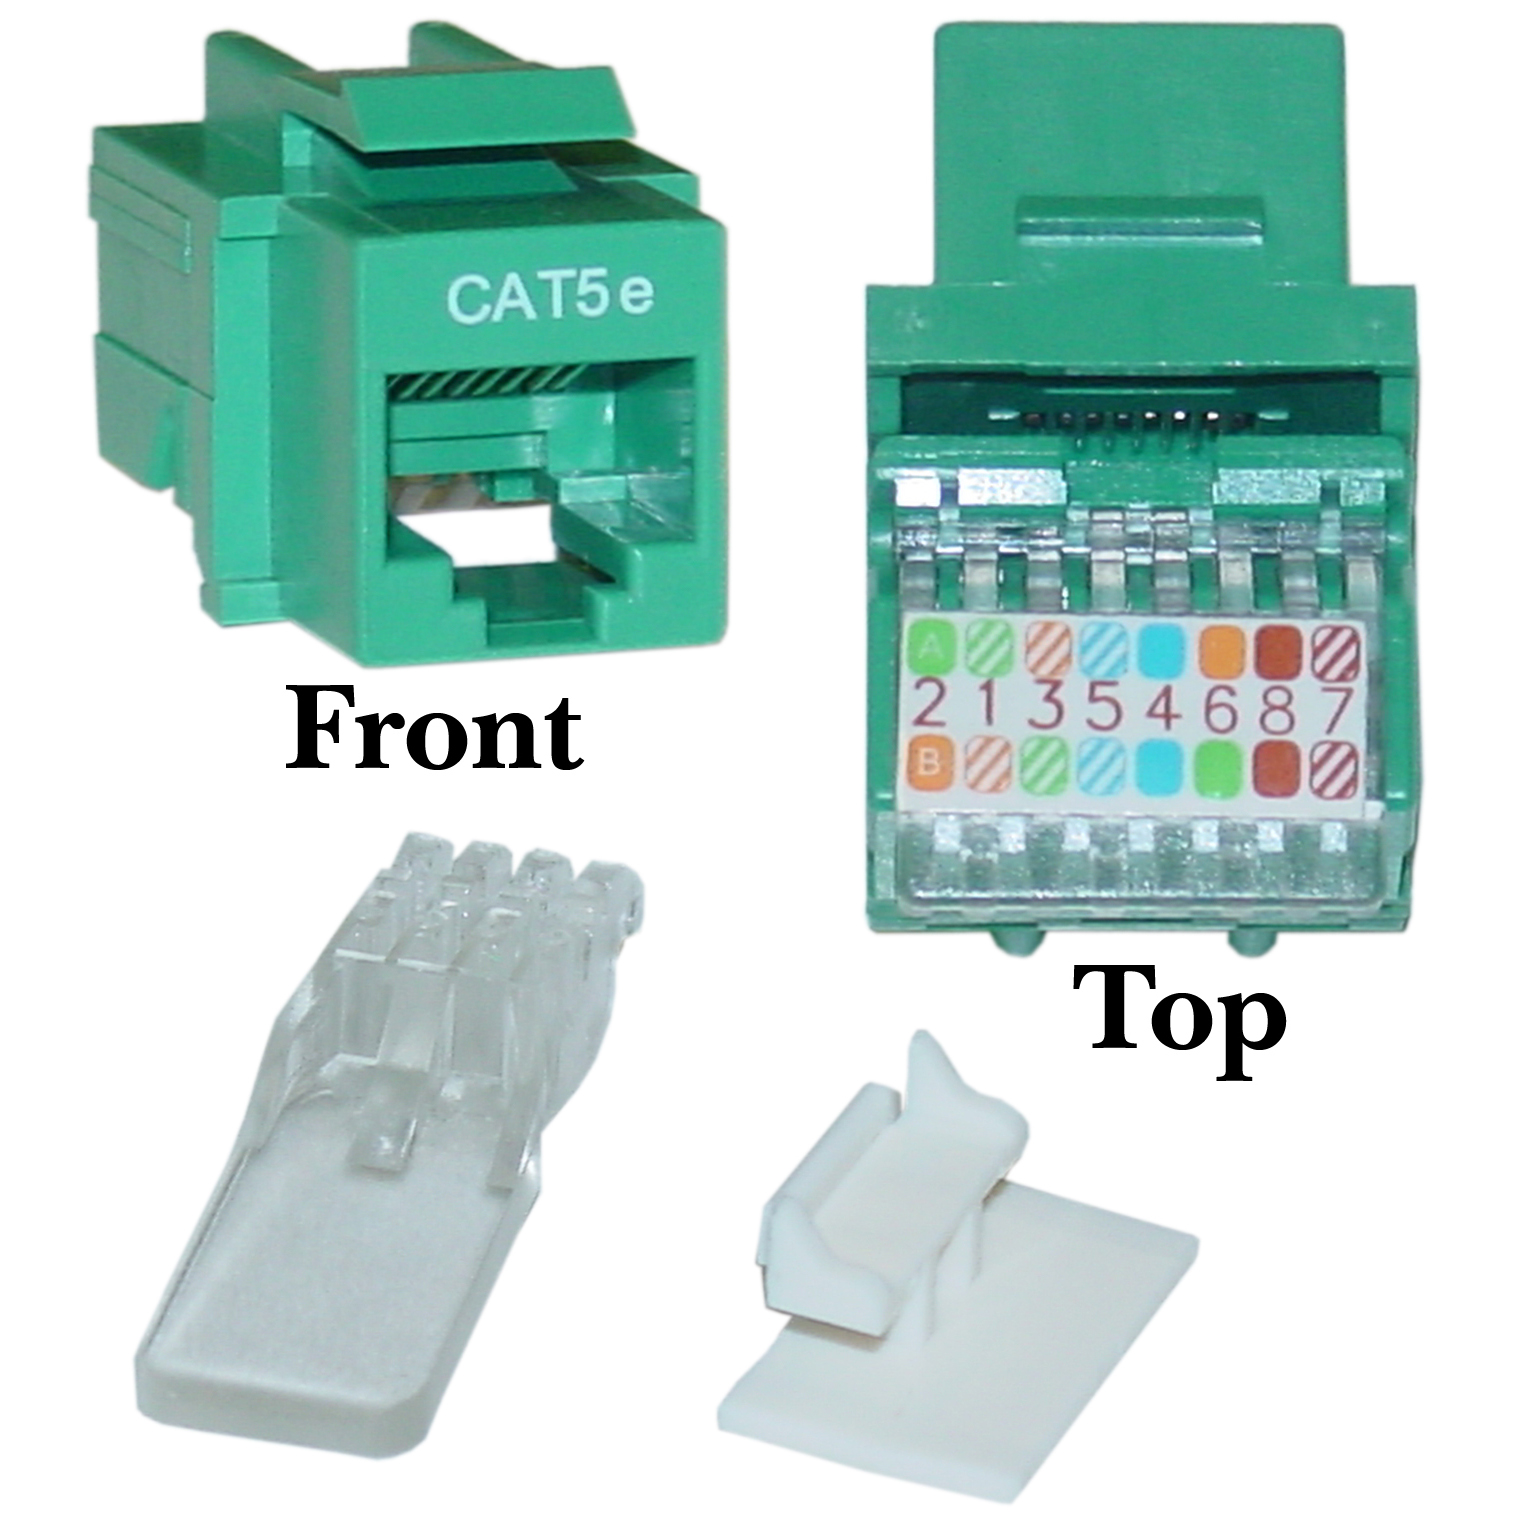 Cat5e Rj45 Keystone Jack Wiring Diagram - DATA Wiring Diagrams •